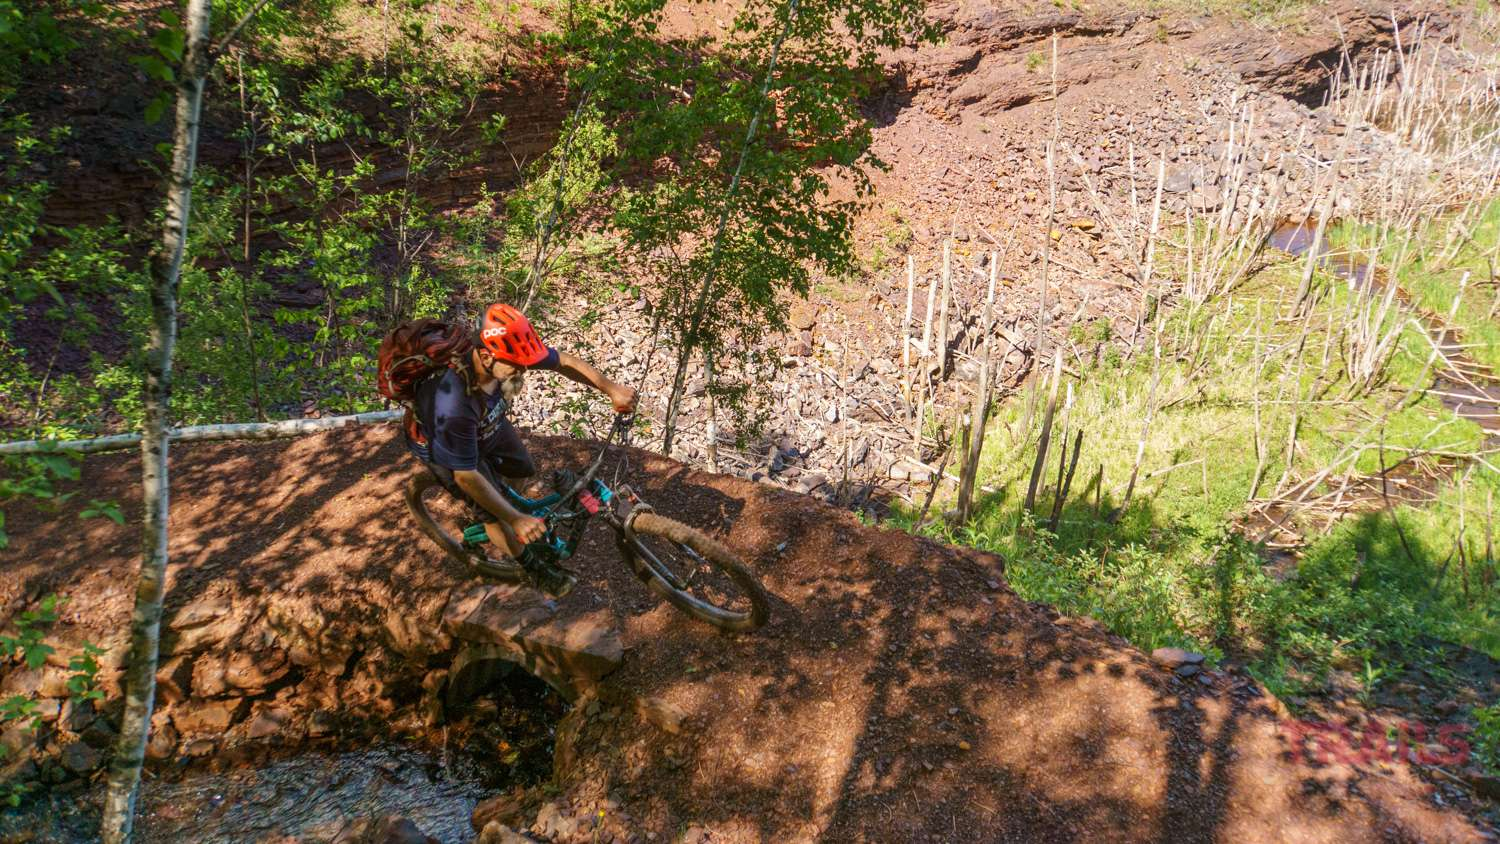 Mountain Biking at the Redhead Mountain Bike Park in Chisholm